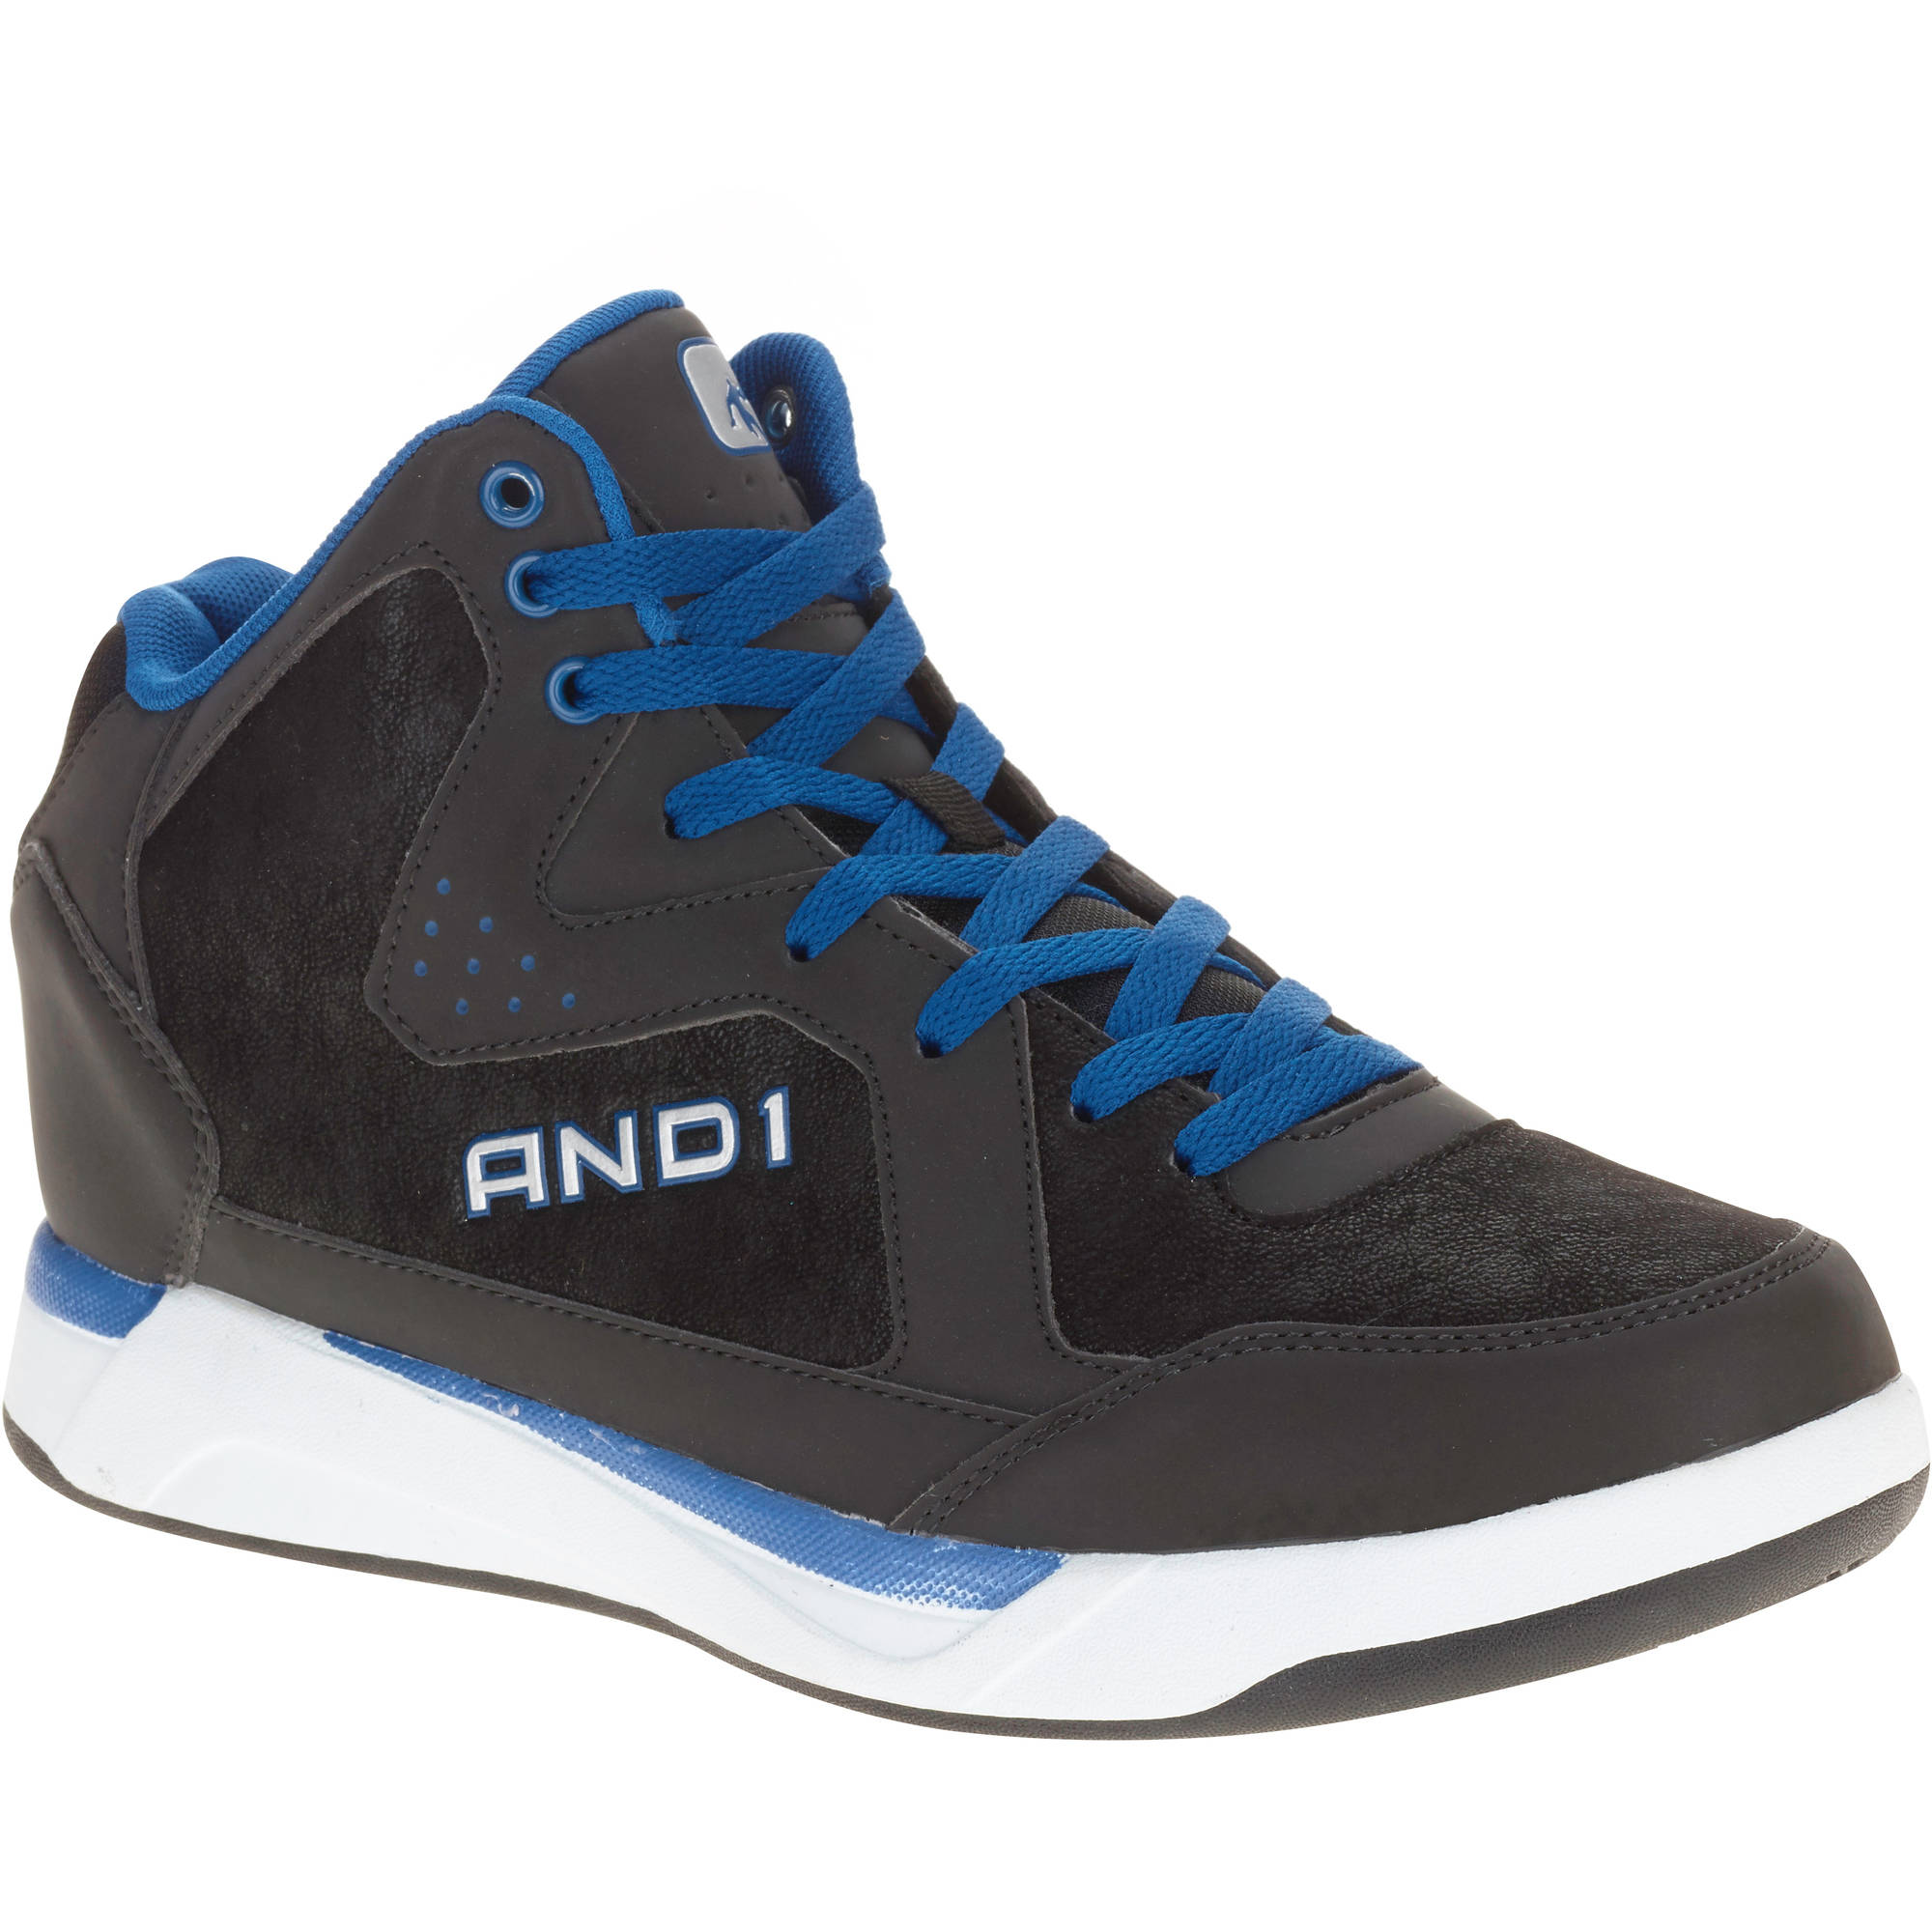 AND1 Men's Ambassador Basketball Shoe